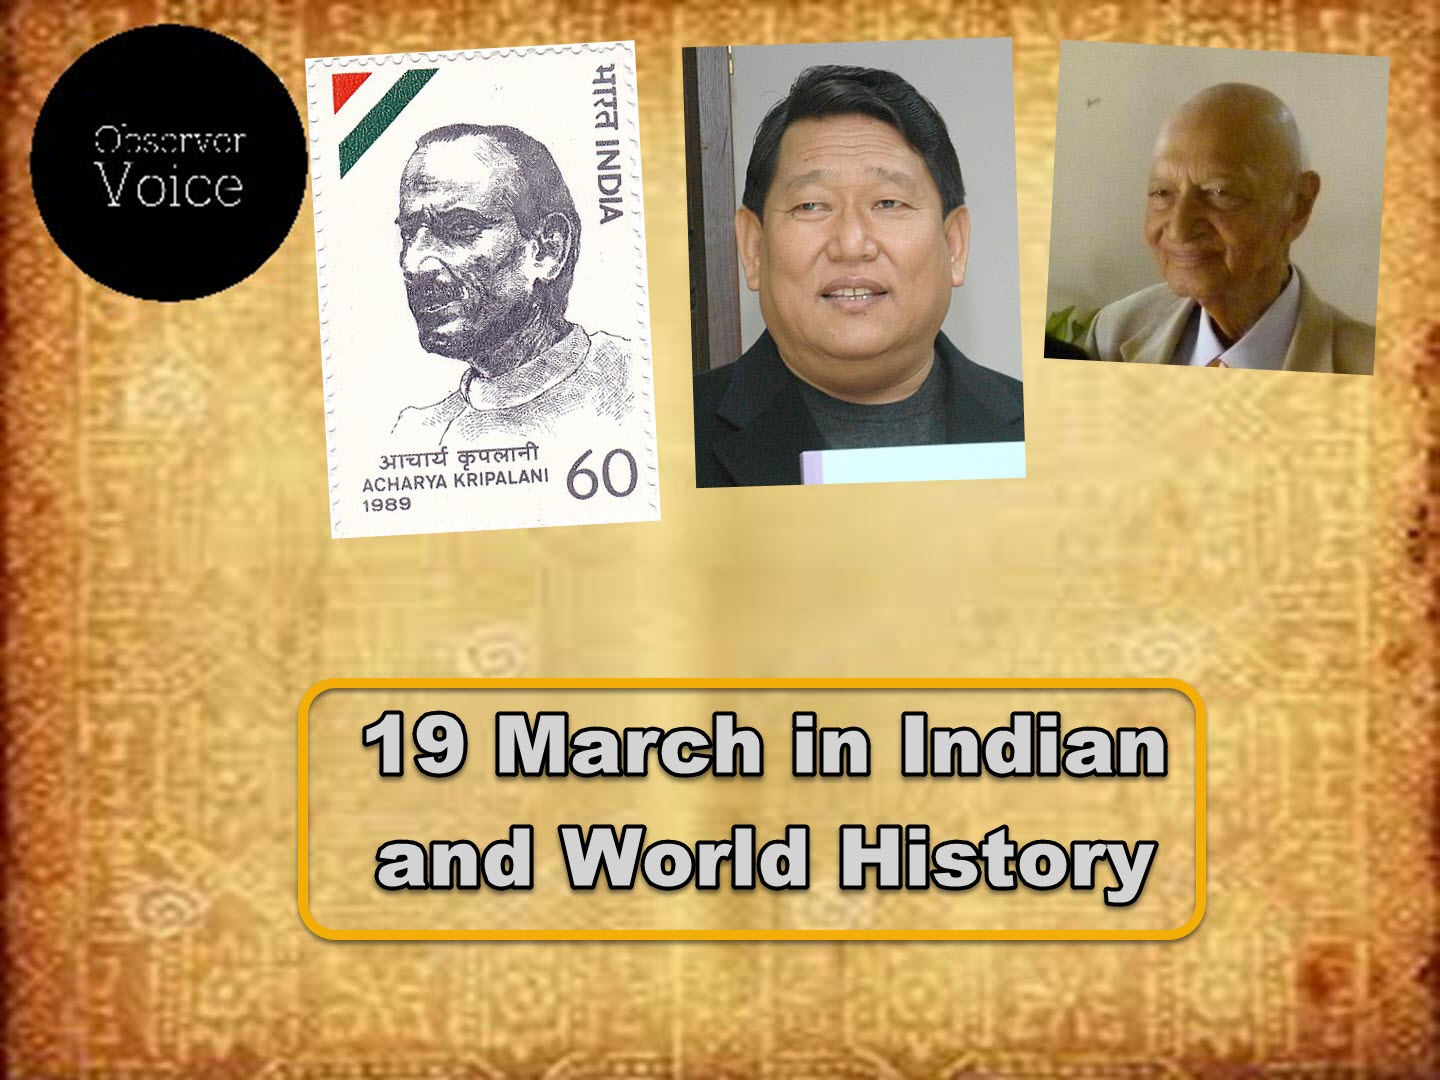 19 March in Indian and World History